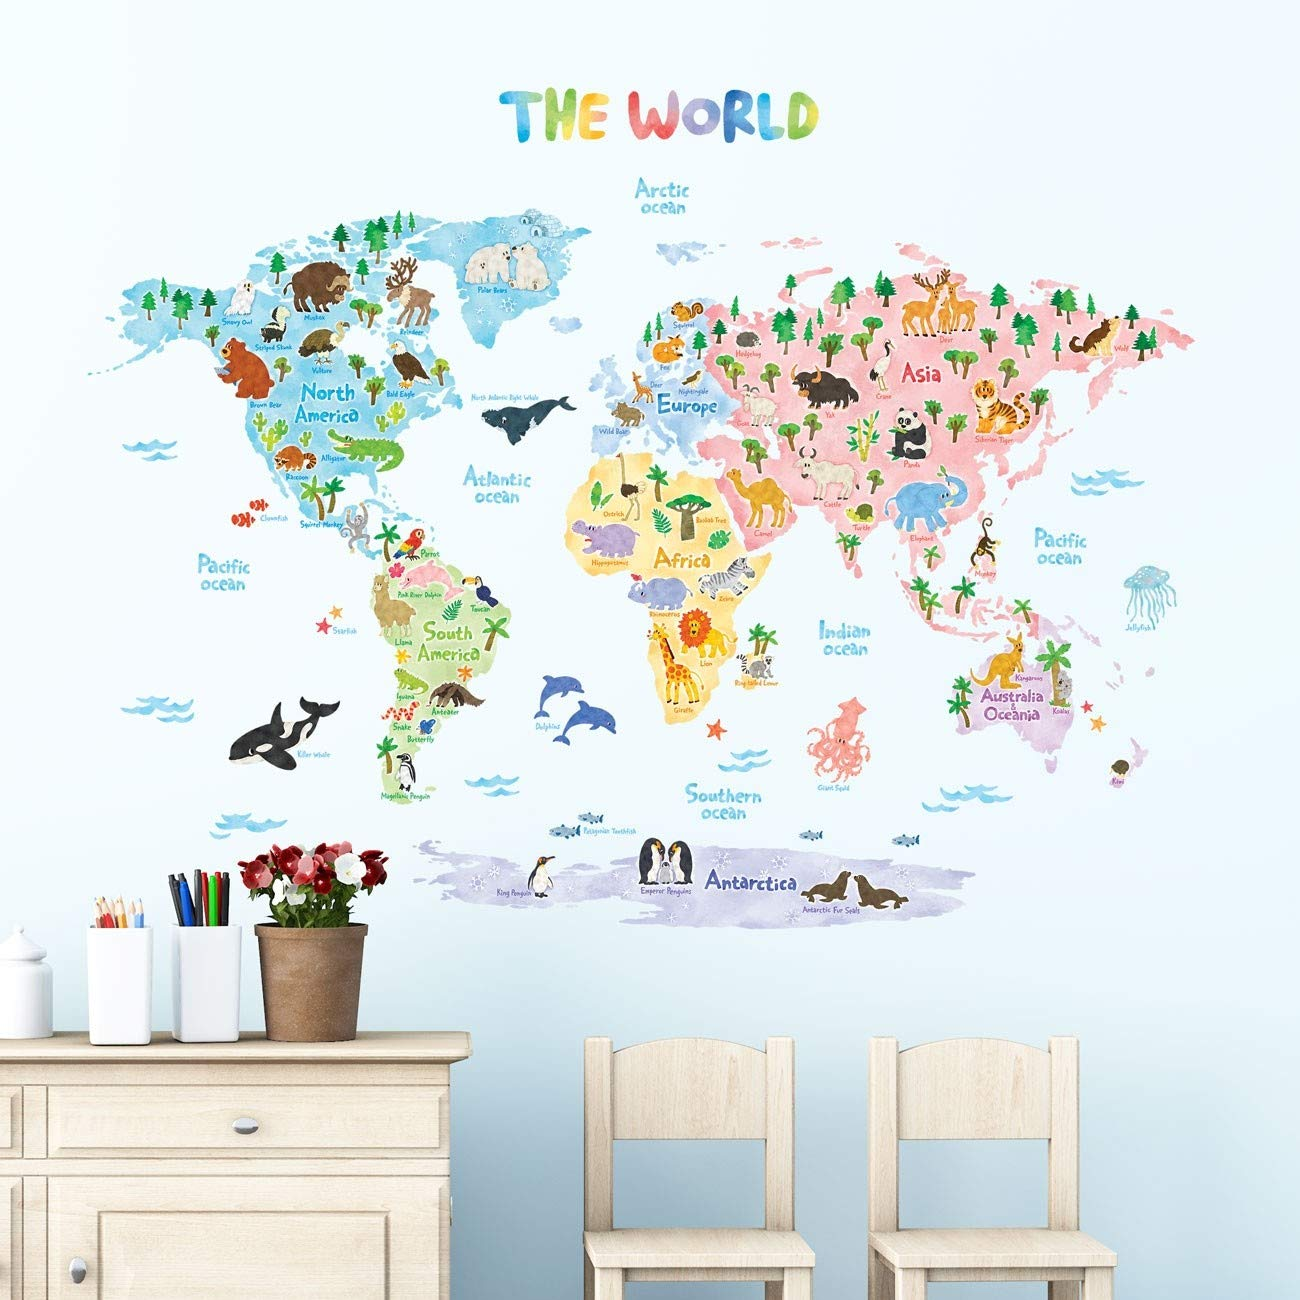 Decowall DLT-1615 Animal World Map Kids Wall Decals Wall Stickers Peel and Stick Removable Wall Stickers for Kids Nursery Bedroom Living Room (XLarge) by Decowall (Image #2)